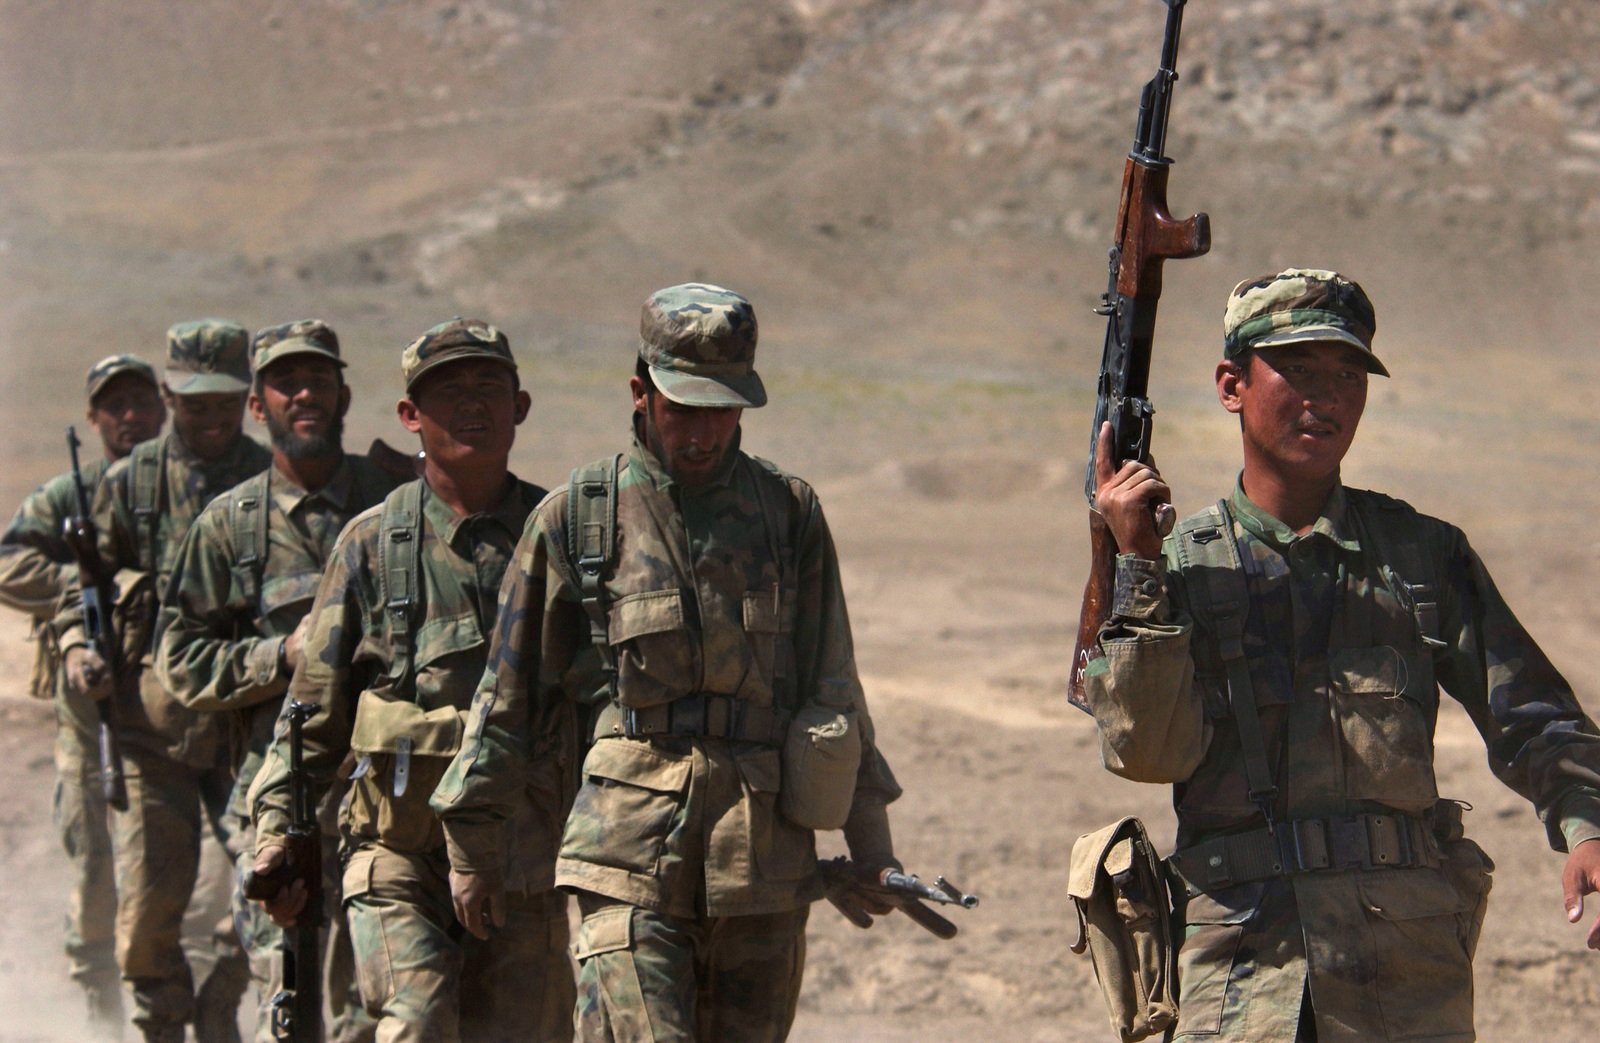 New Recruits assigned to the 1ST Battalion of the Afghanistan National Army (ANA), armed with 7.62